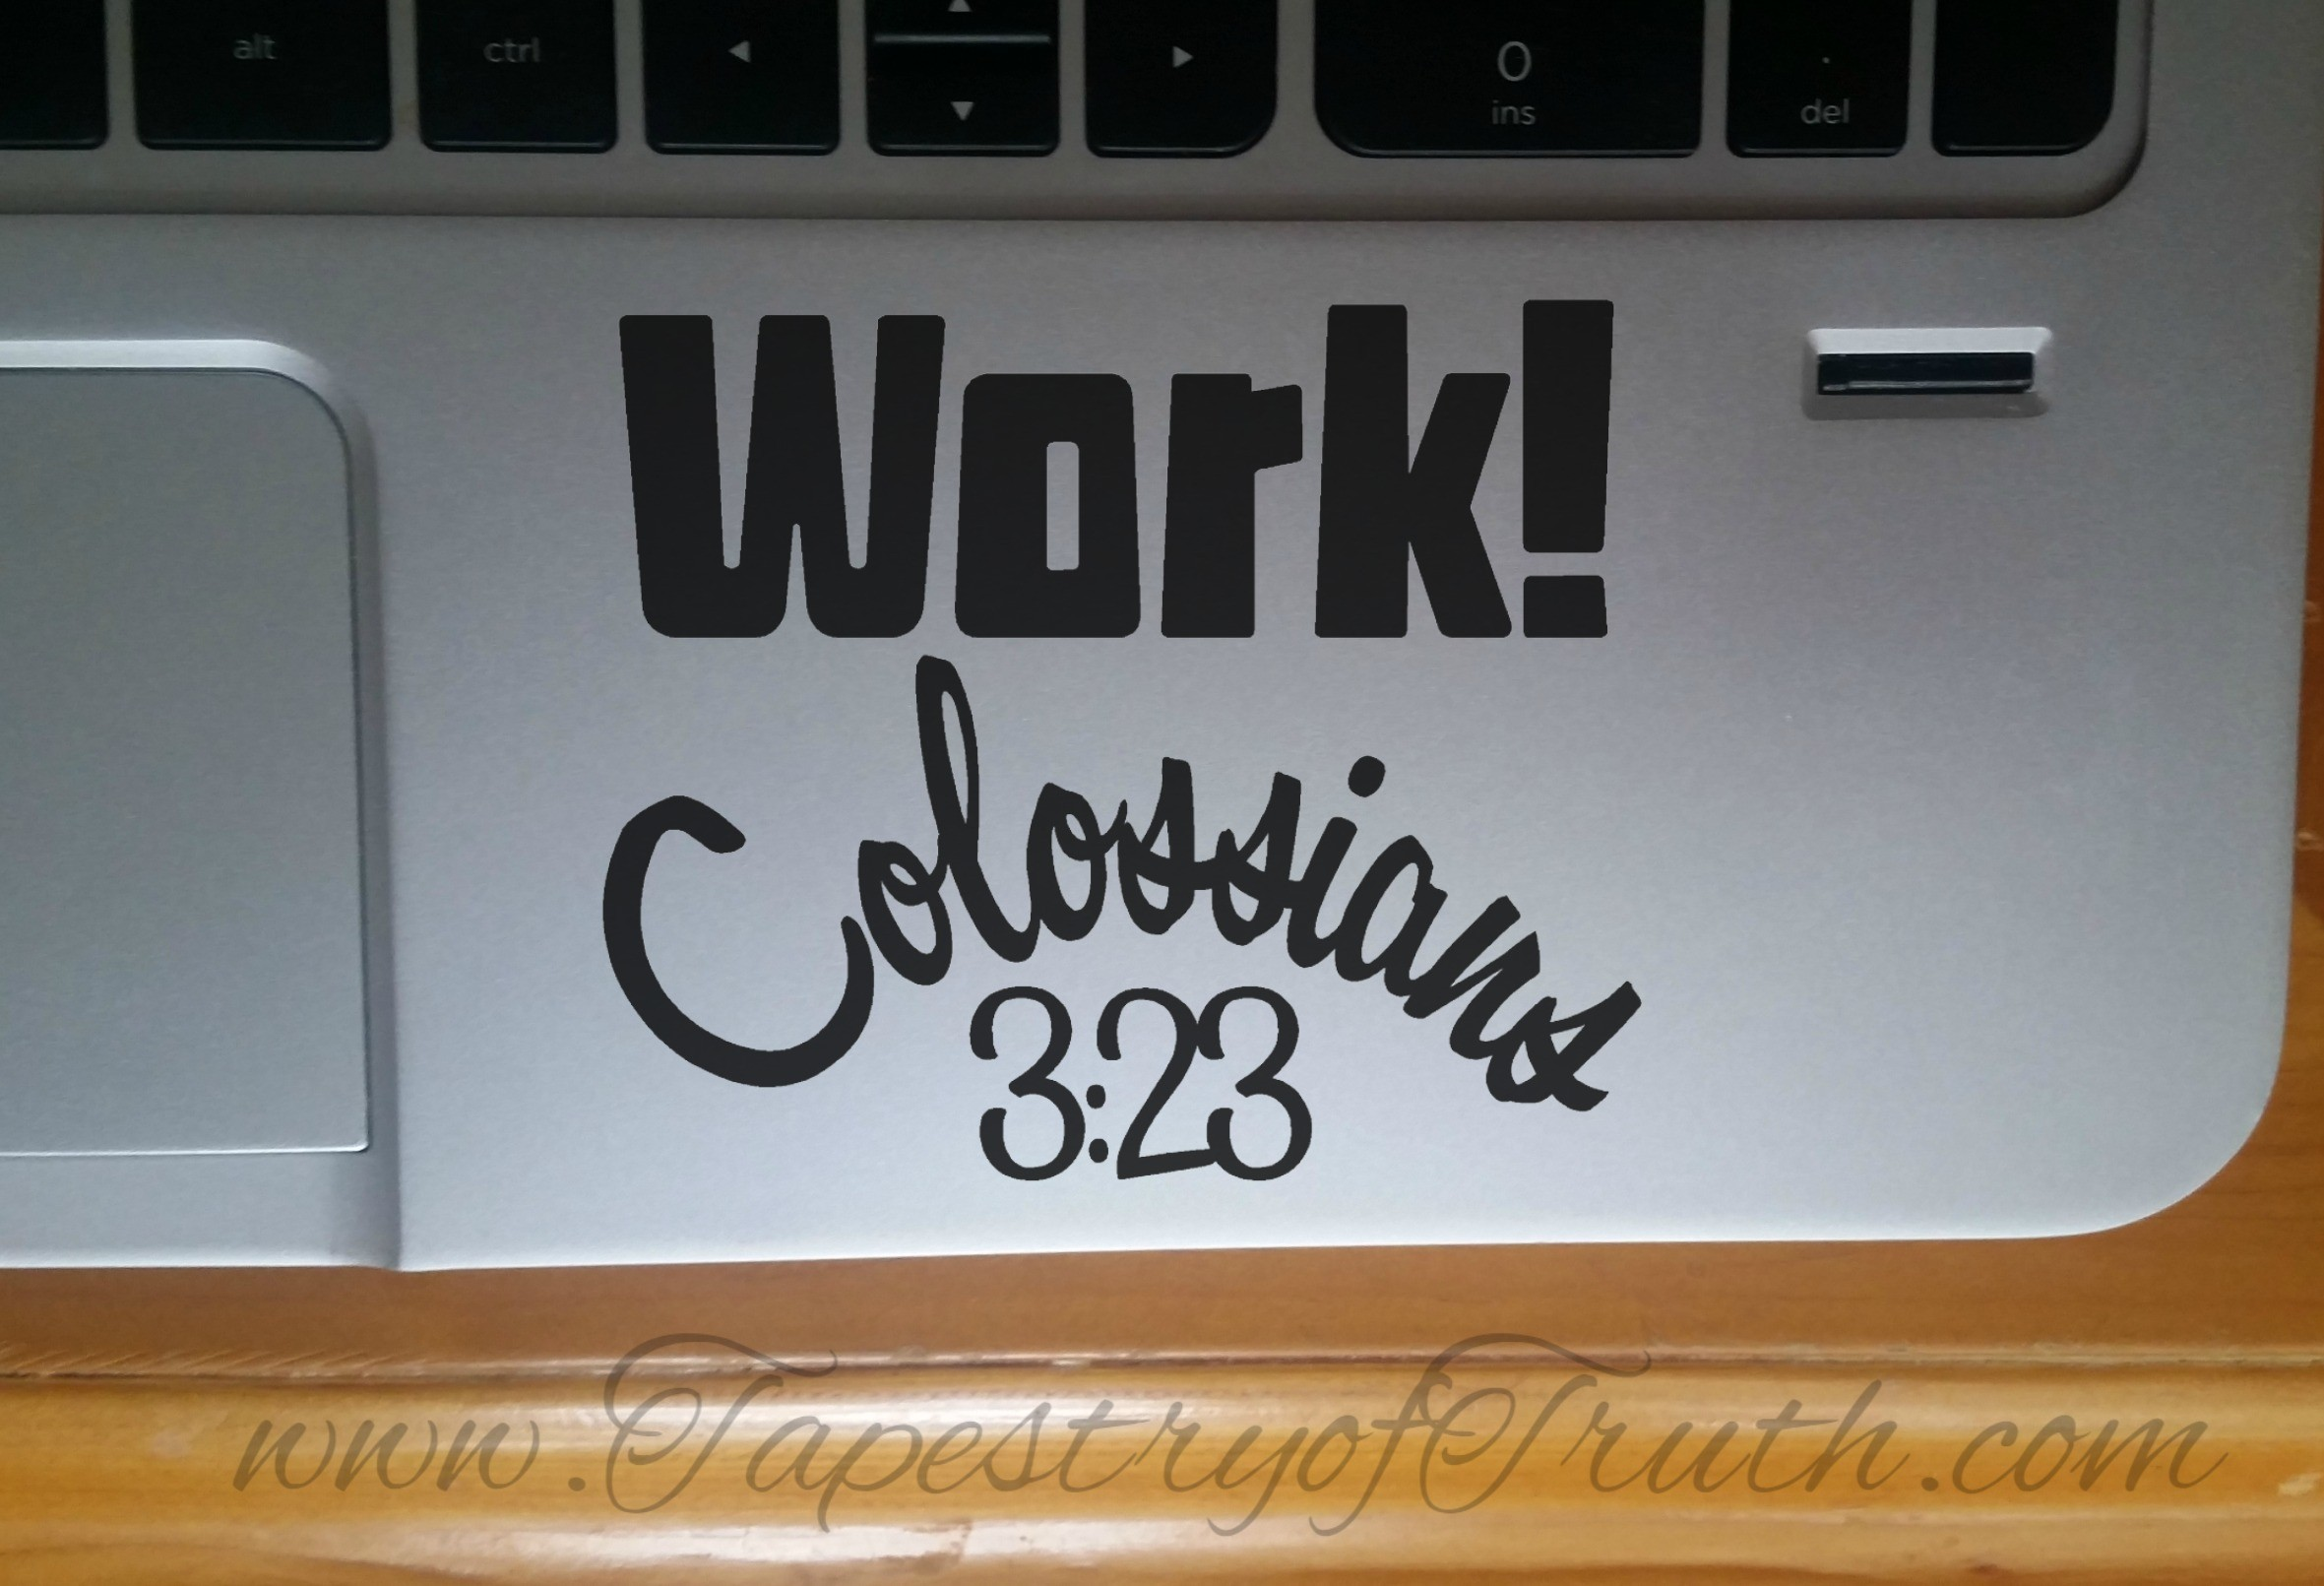 Work! Colossians 3:23 - Laptop Decal